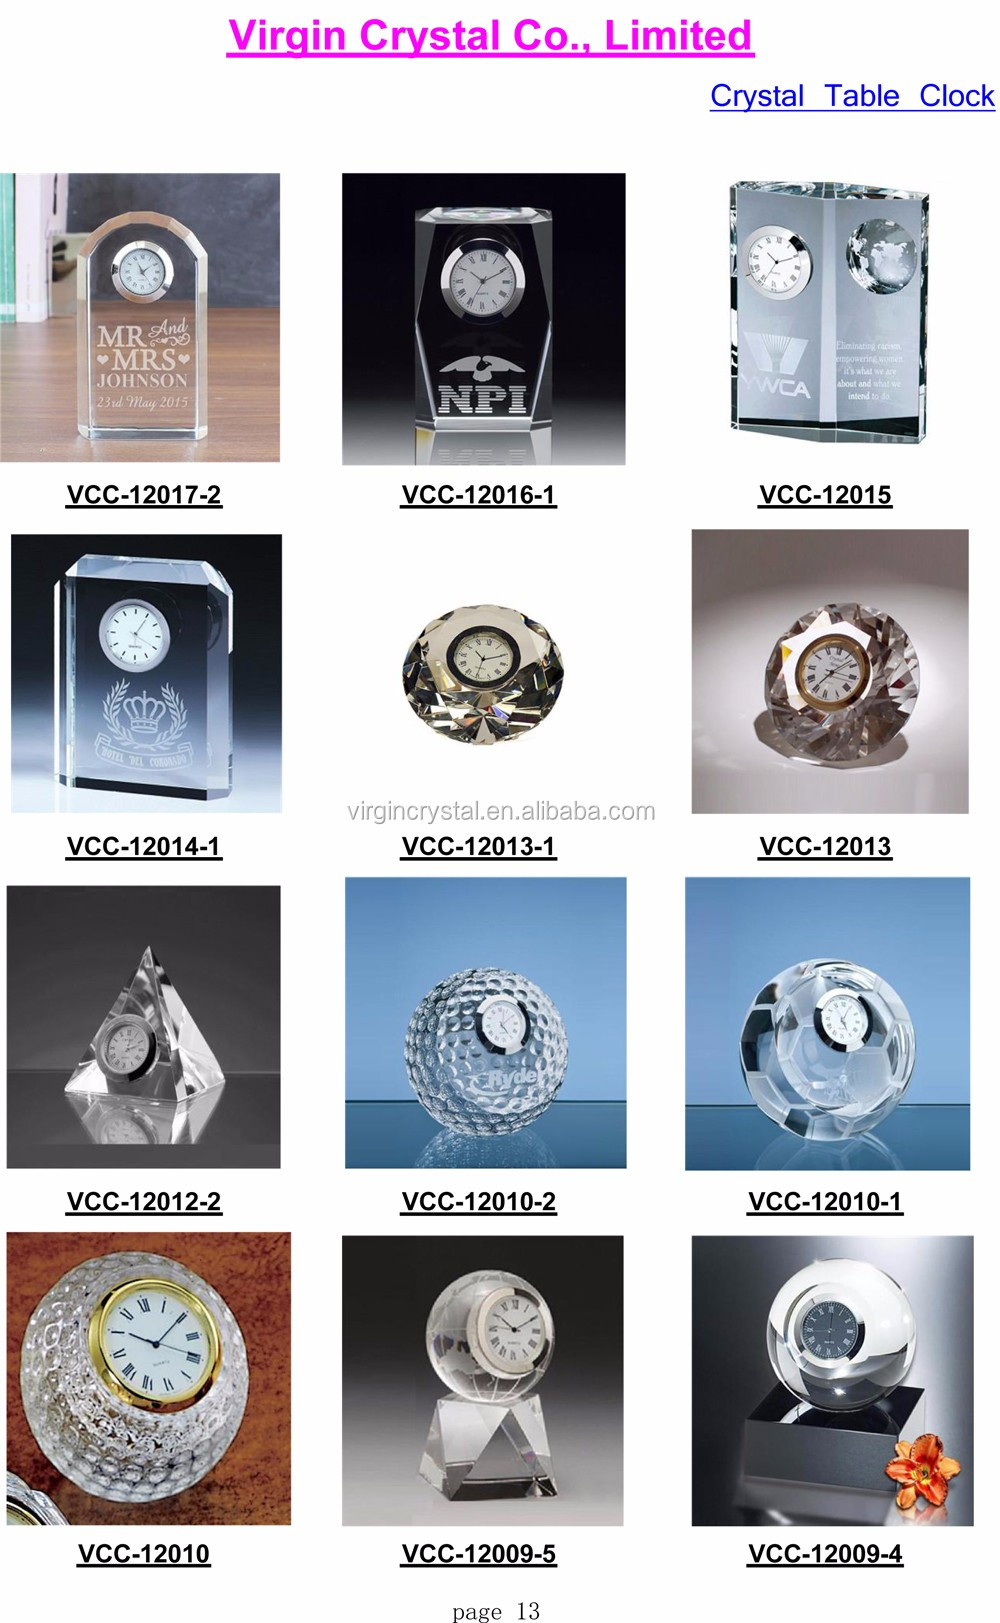 2016 Crystal Table Clock and Mechanical clock Catalog-13.jpg